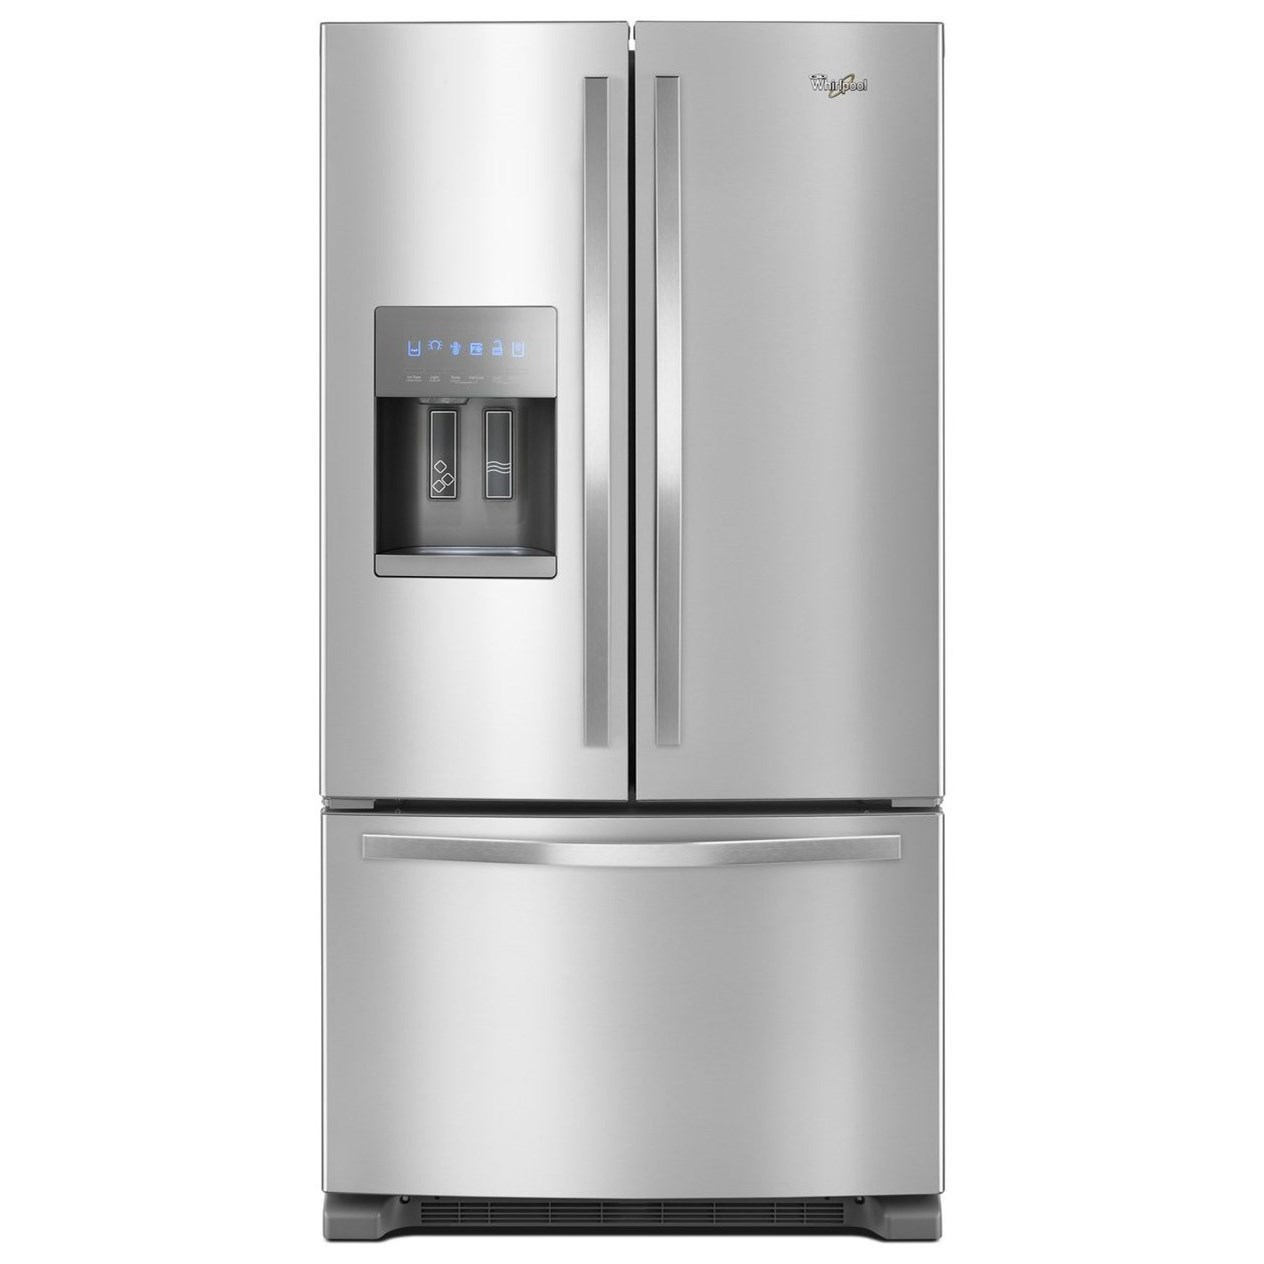 Captivating Whirlpool French Door Refrigerators36 Inch Wide French Door Refrigerator ...